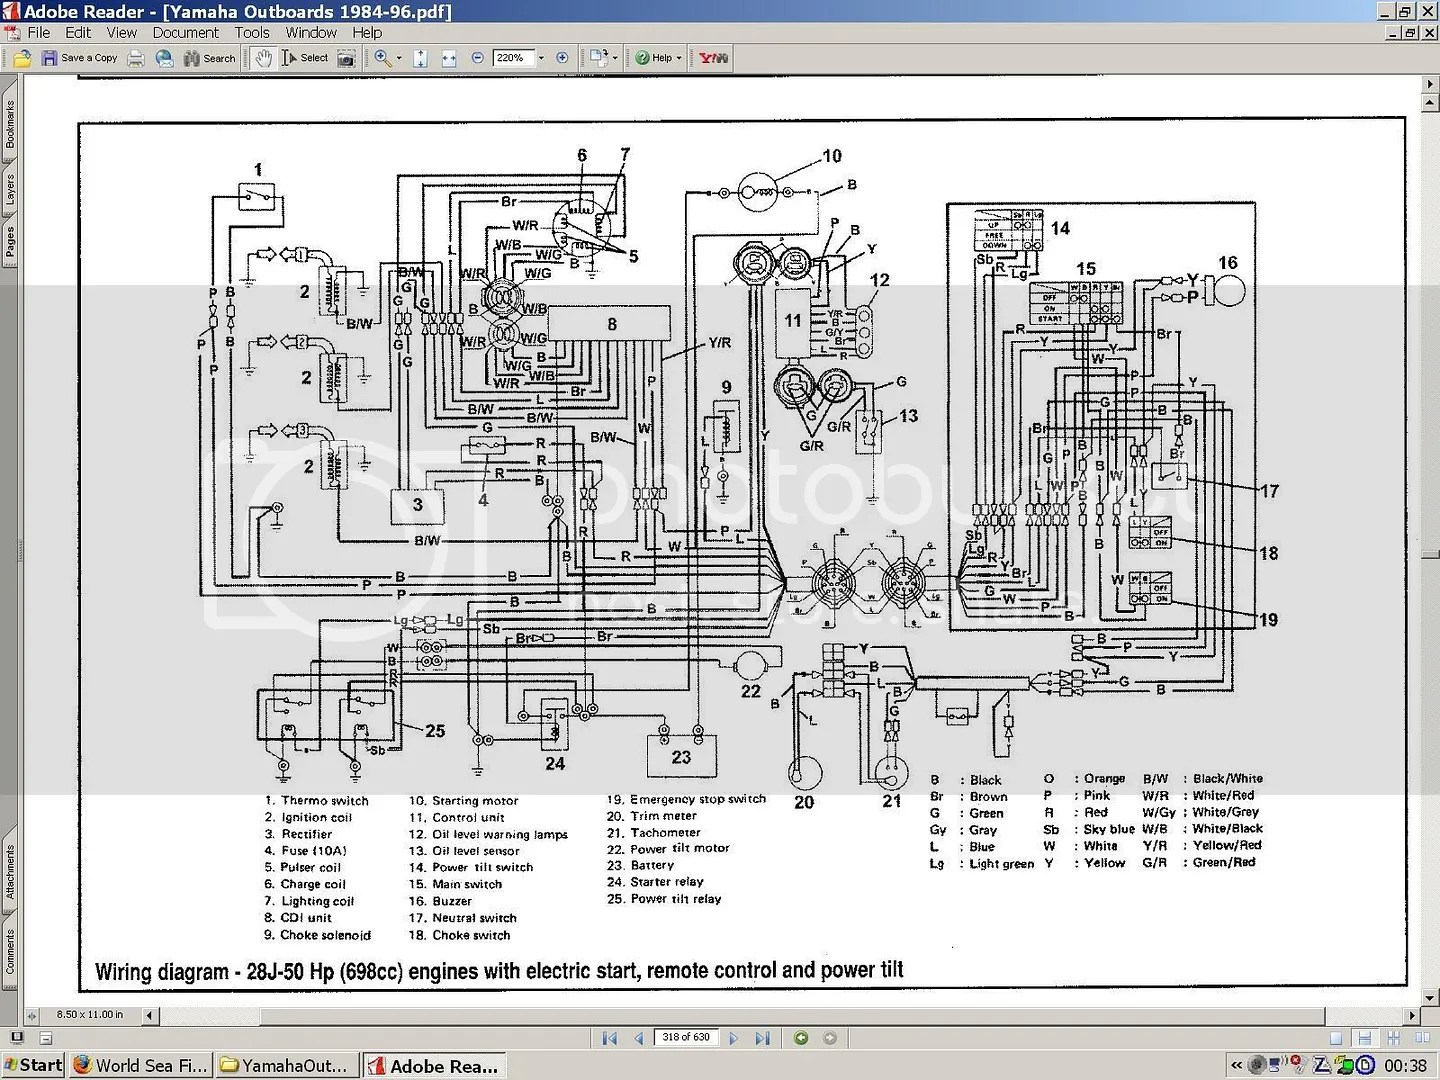 Wiring Diagram Manual For Yamaha 703 Control